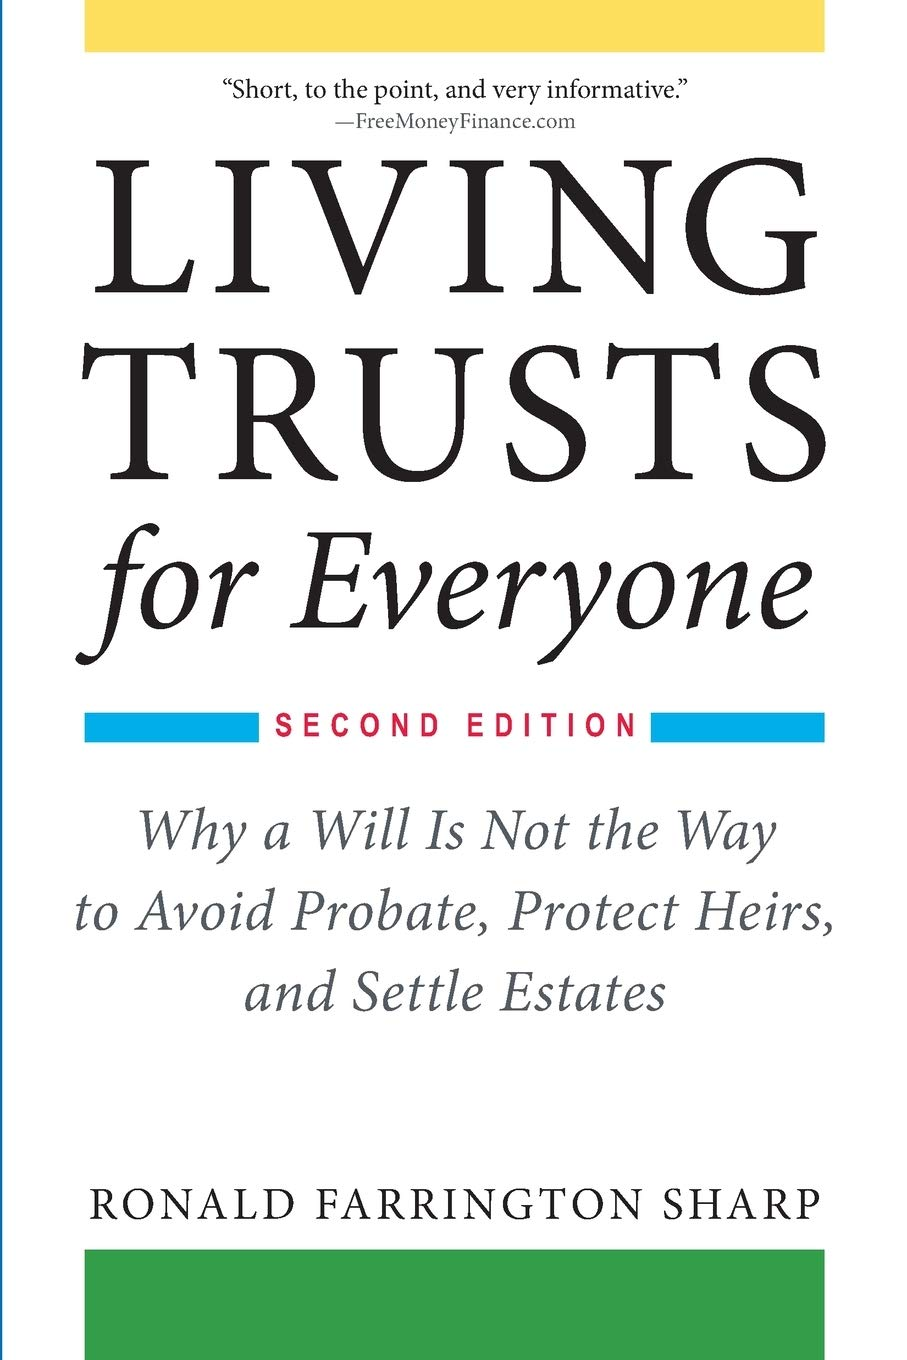 Image for Living Trusts for Everyone: Why a Will Is Not the Way to Avoid Probate, Protect Heirs, and Settle Estates (Second Edition)